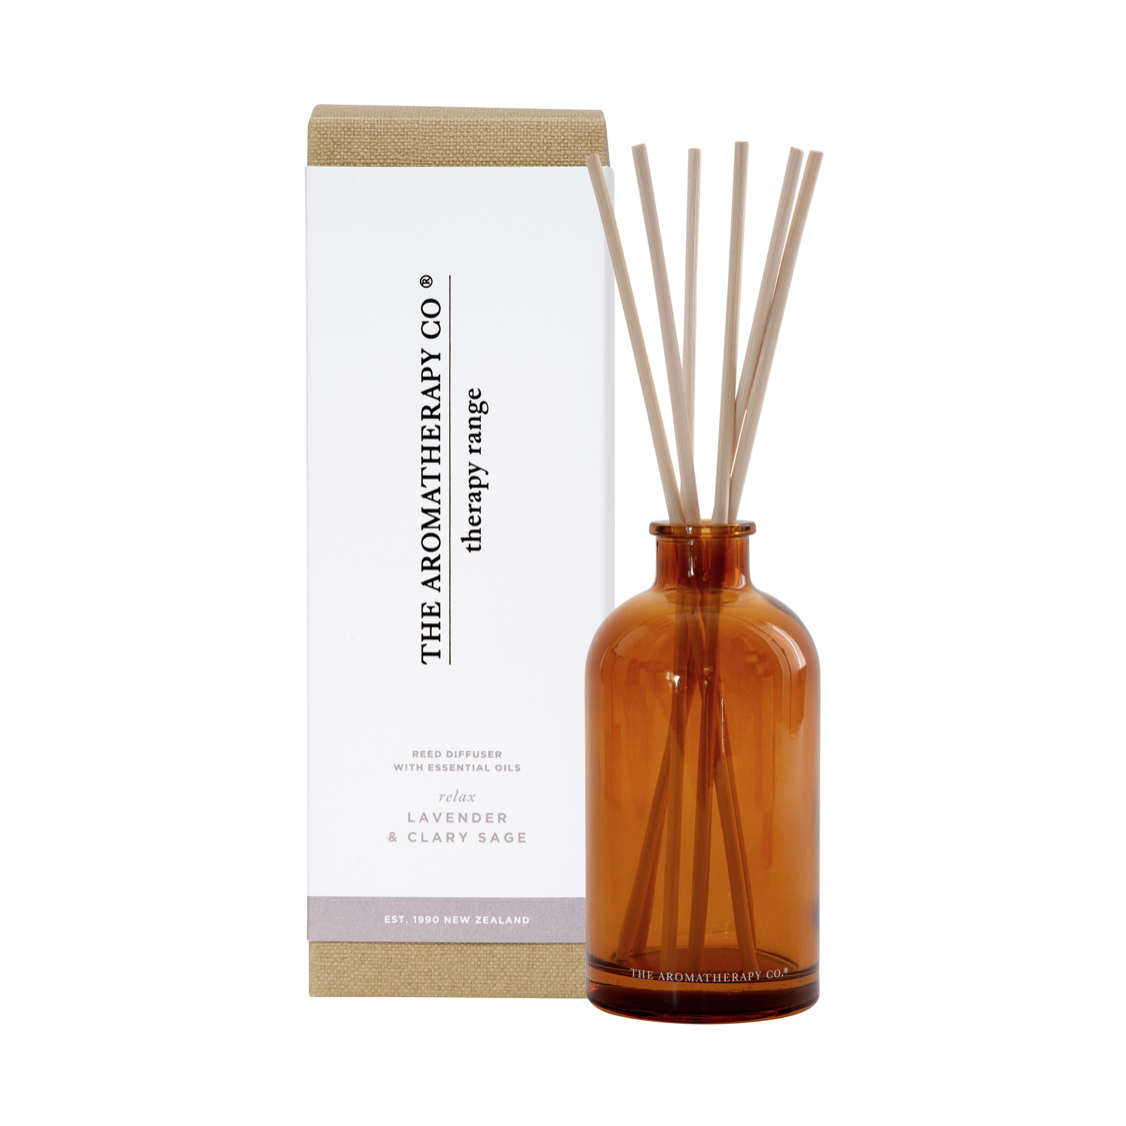 THERAPY DIFFUSER - RELAX - LAVENDER & CLARY SAGE